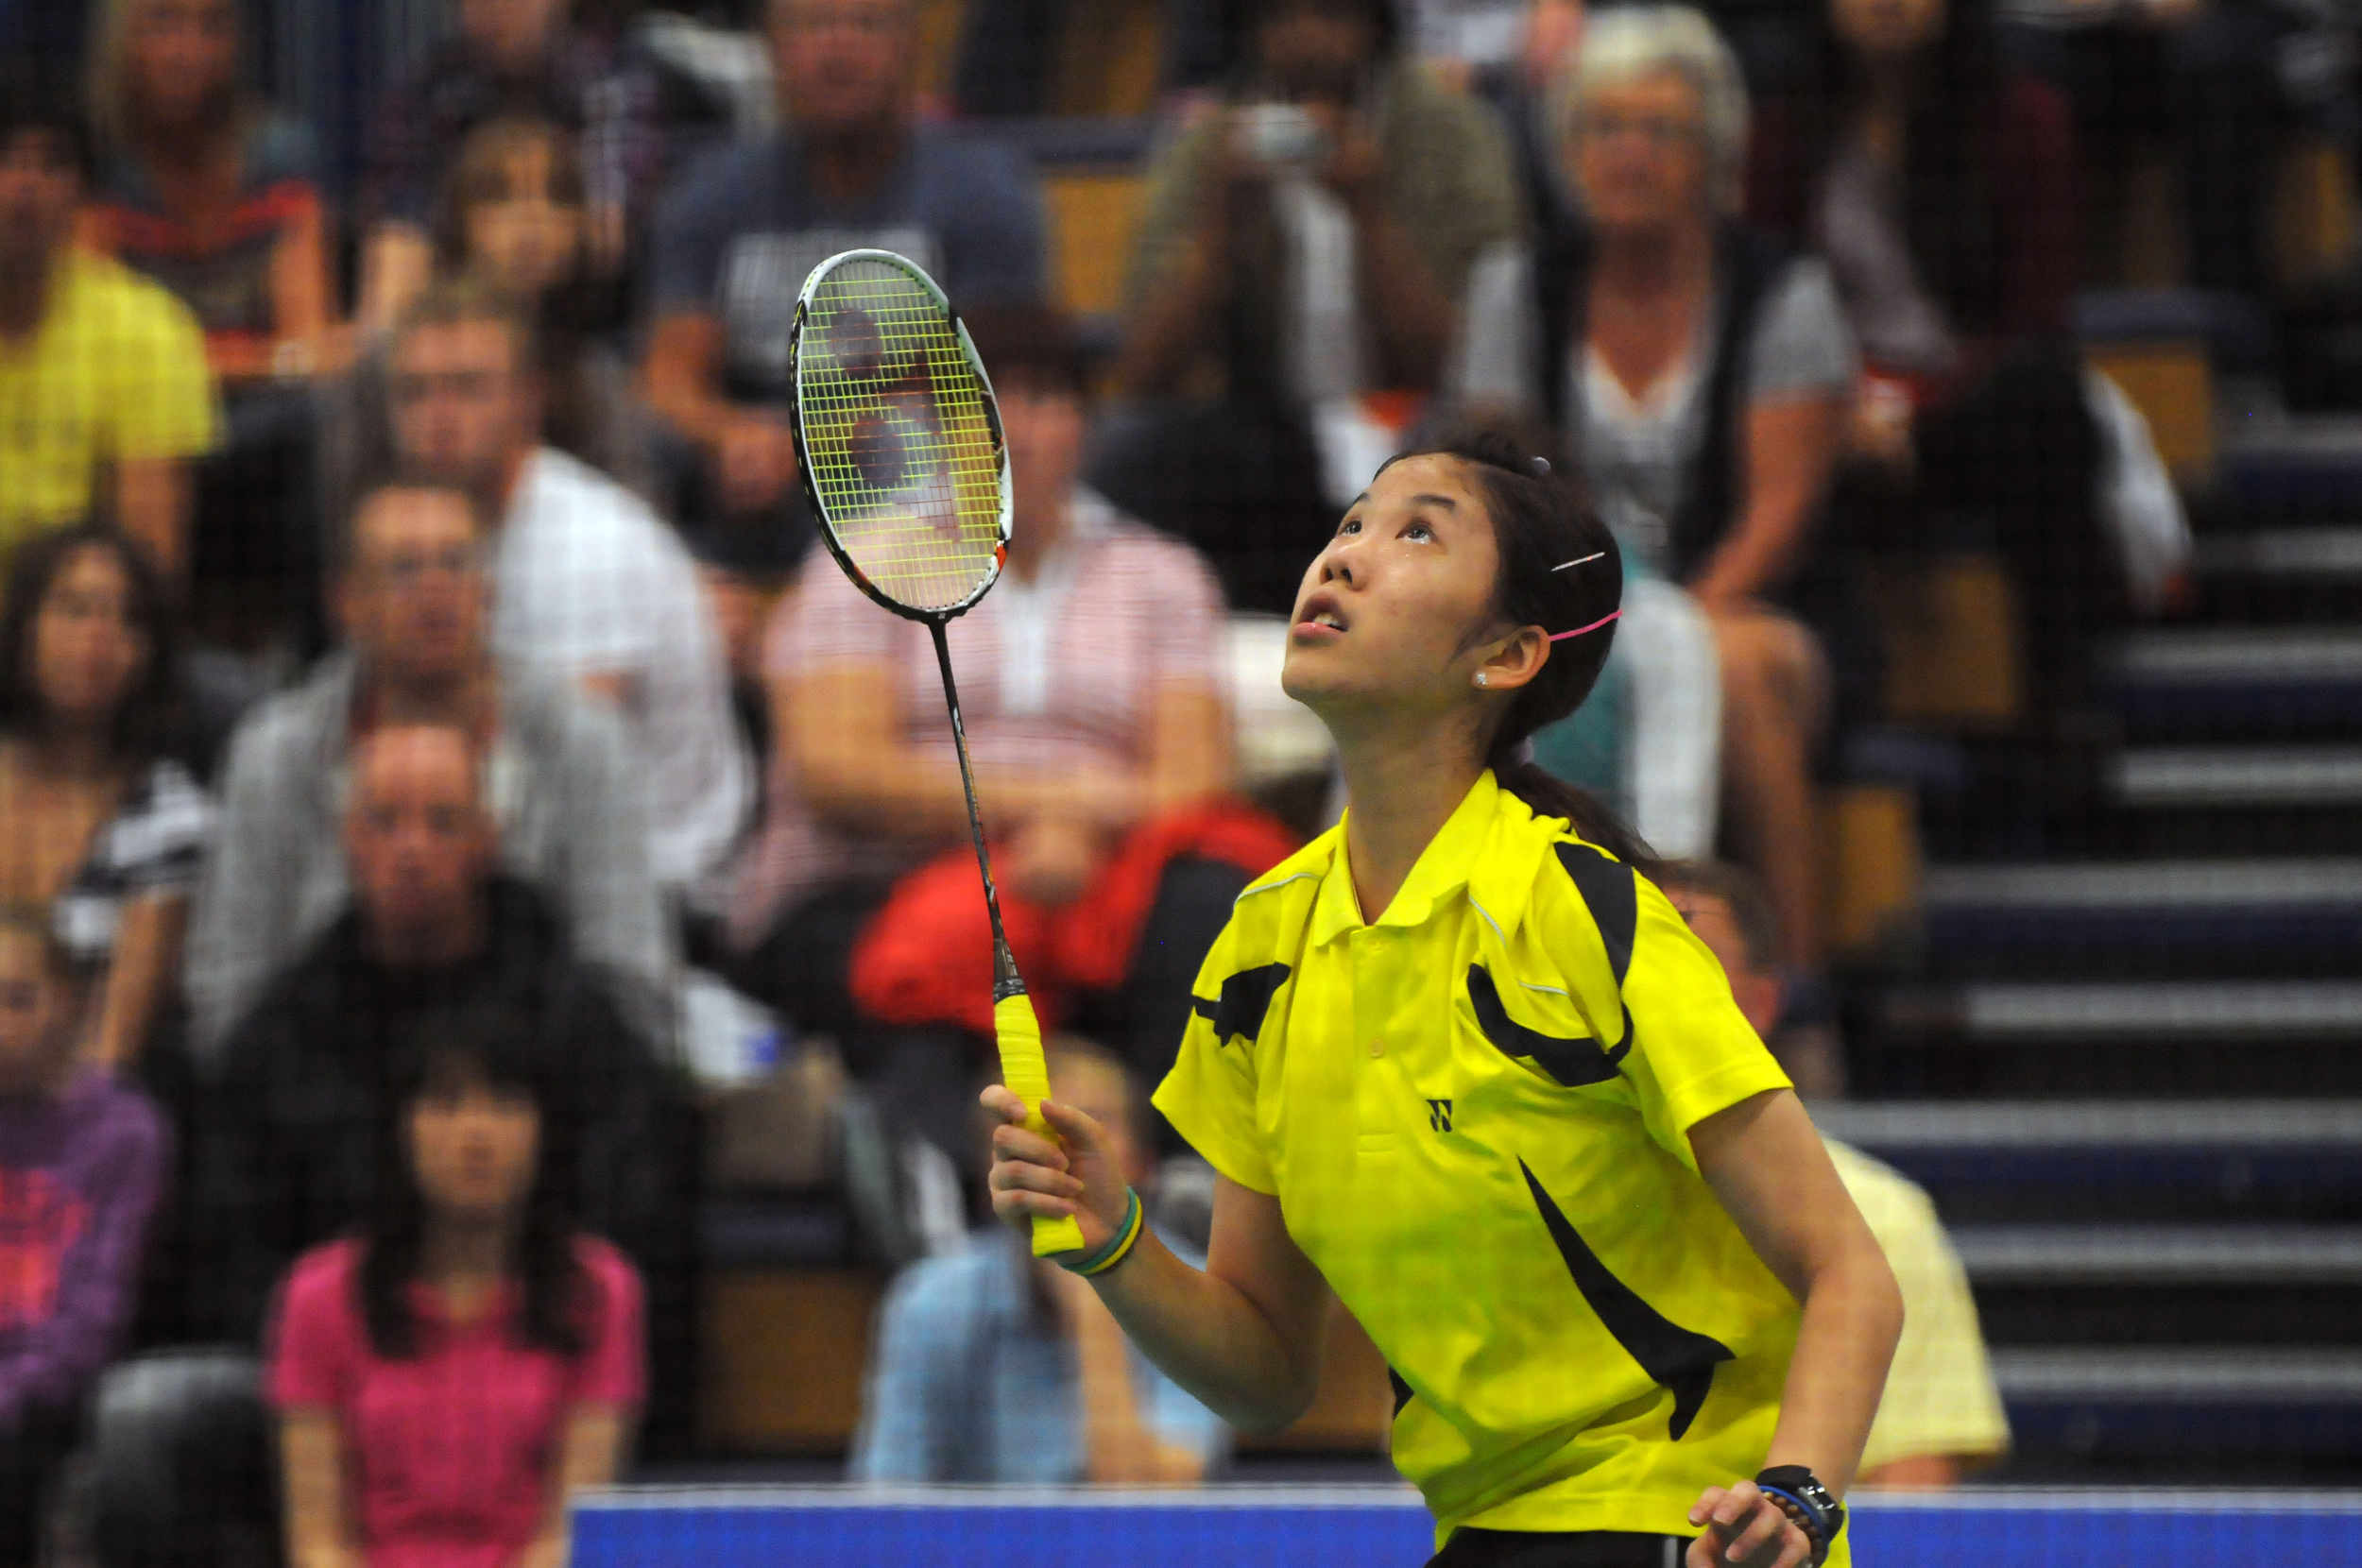 Sonia Cheah representing Malaysia wins the silver medal in the Women's Singles Badminton at the 2011 Commonwealth Youth Games